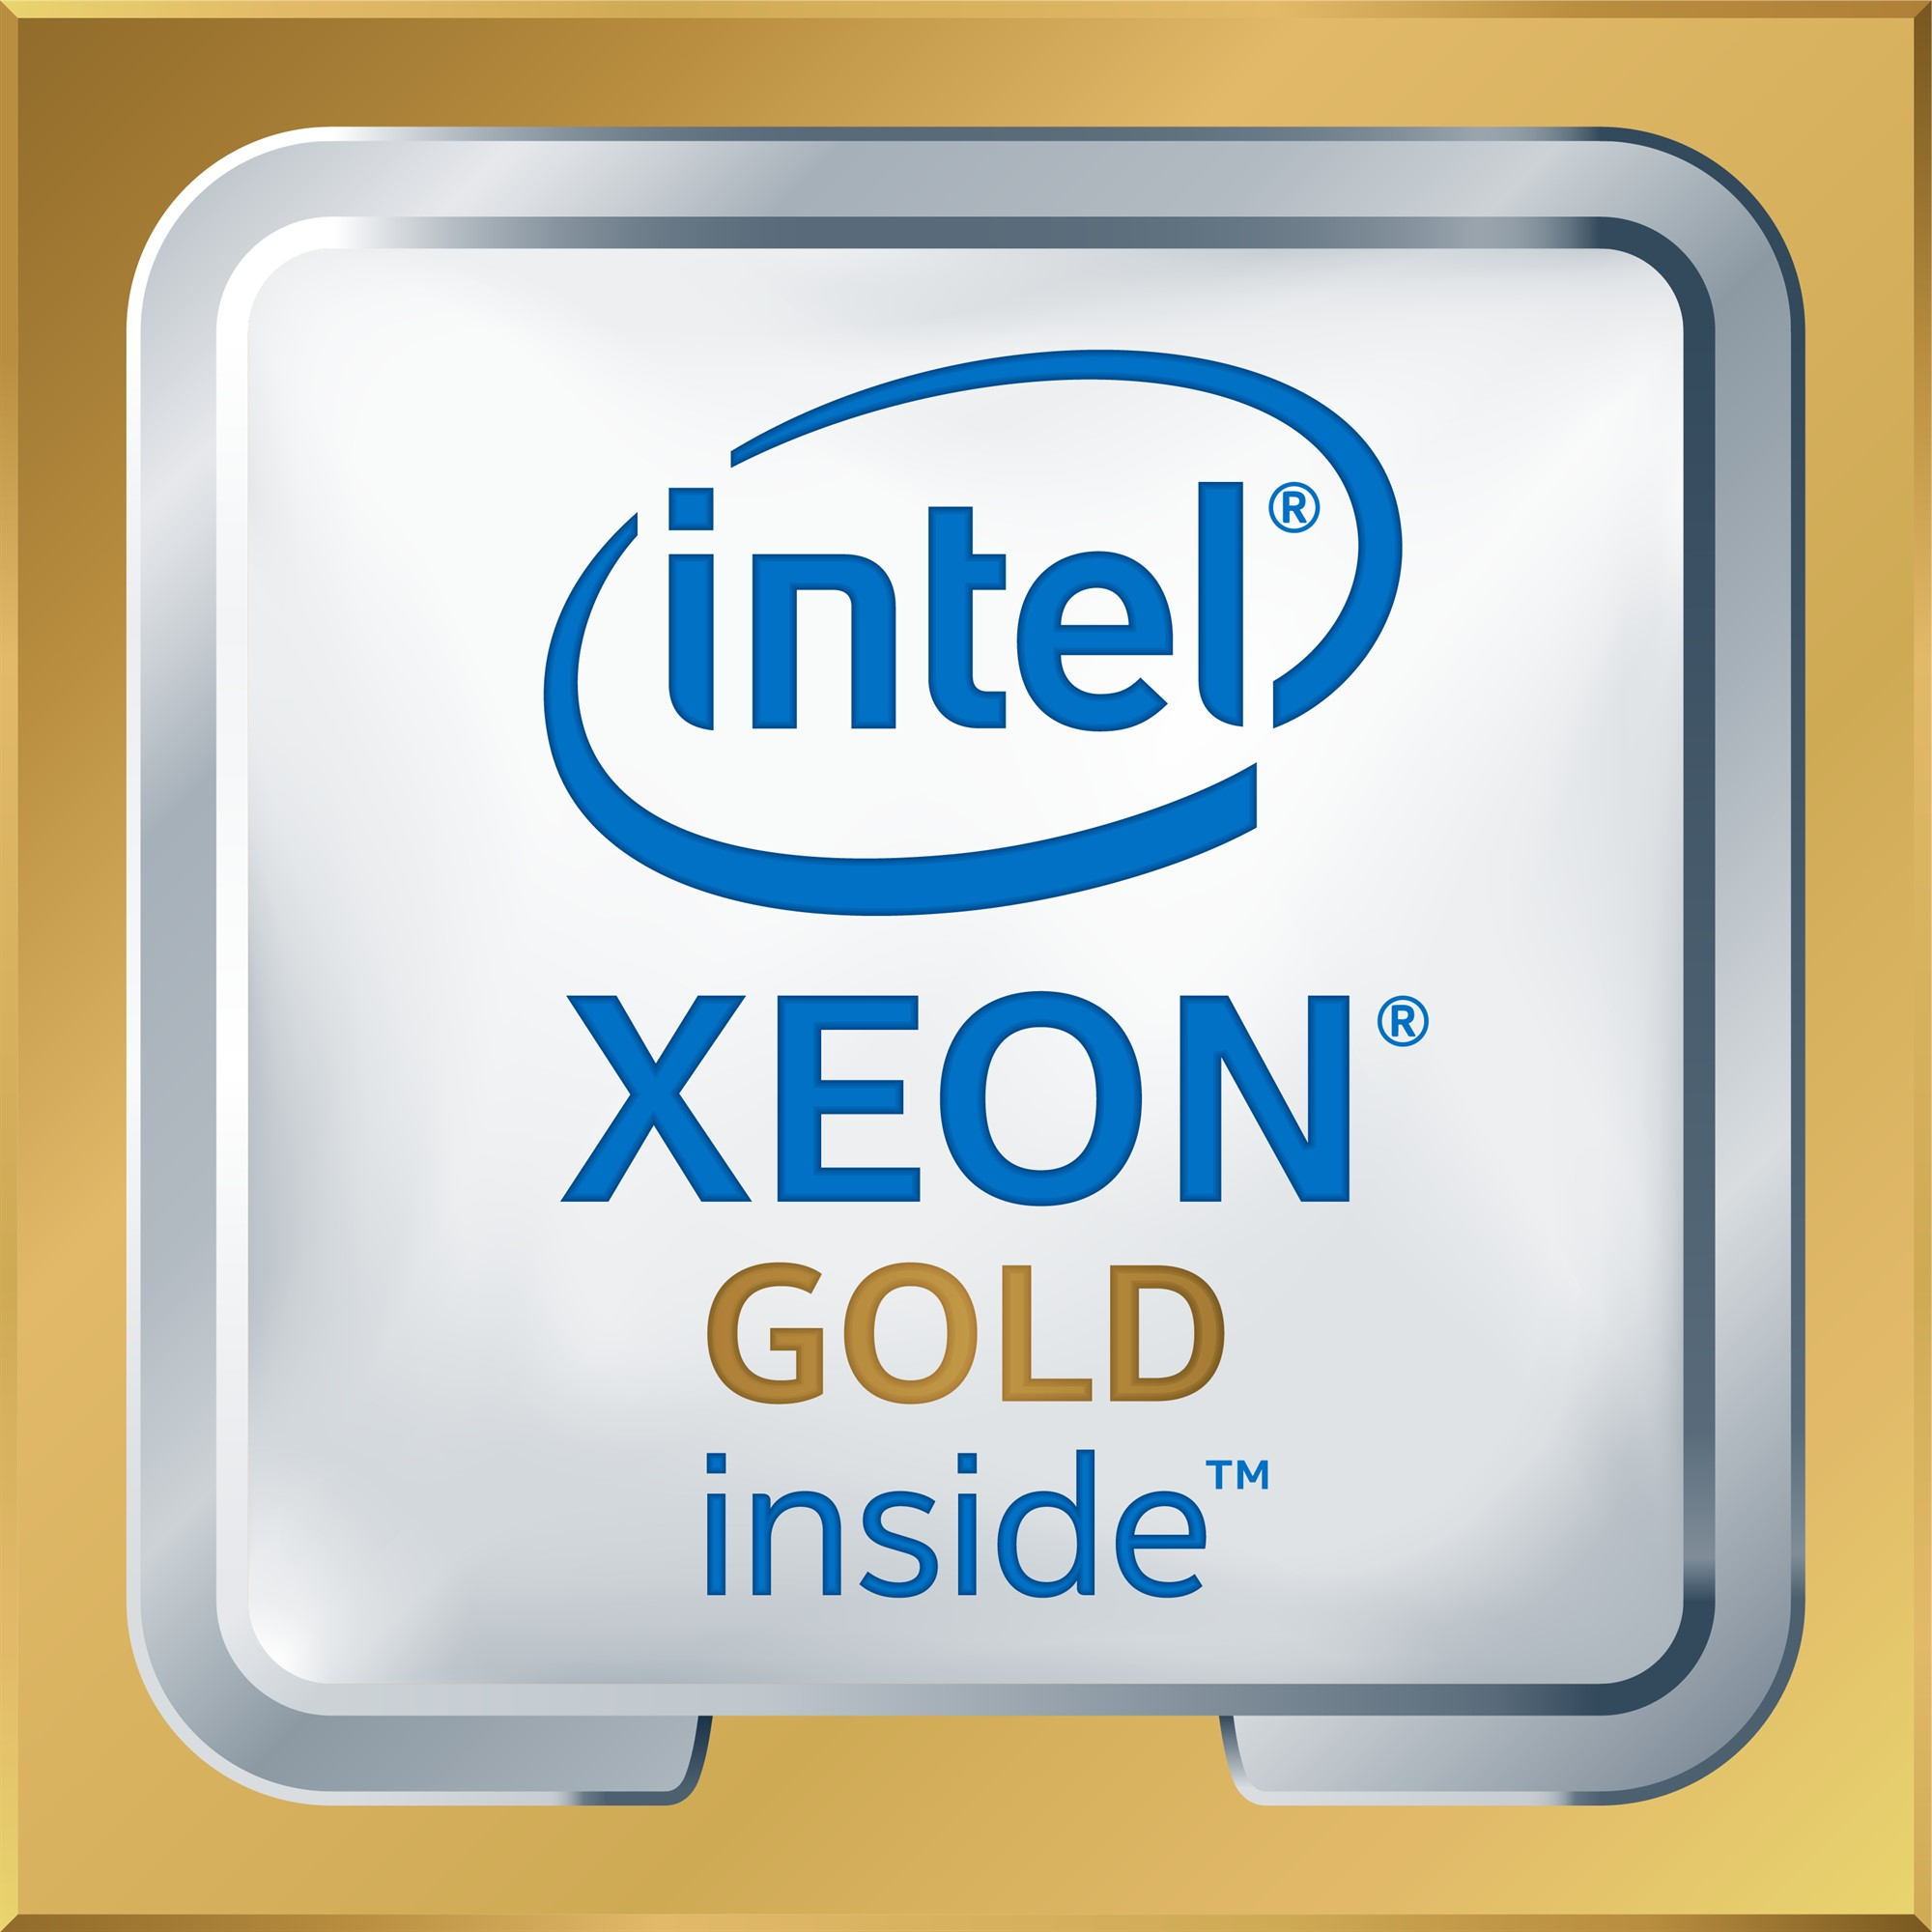 INTEL XEON GOLD 6140 PROCESSOR (24.75M CACHE, 2.30 GHZ) 2.3GHZ 24.75MB L3 BOX